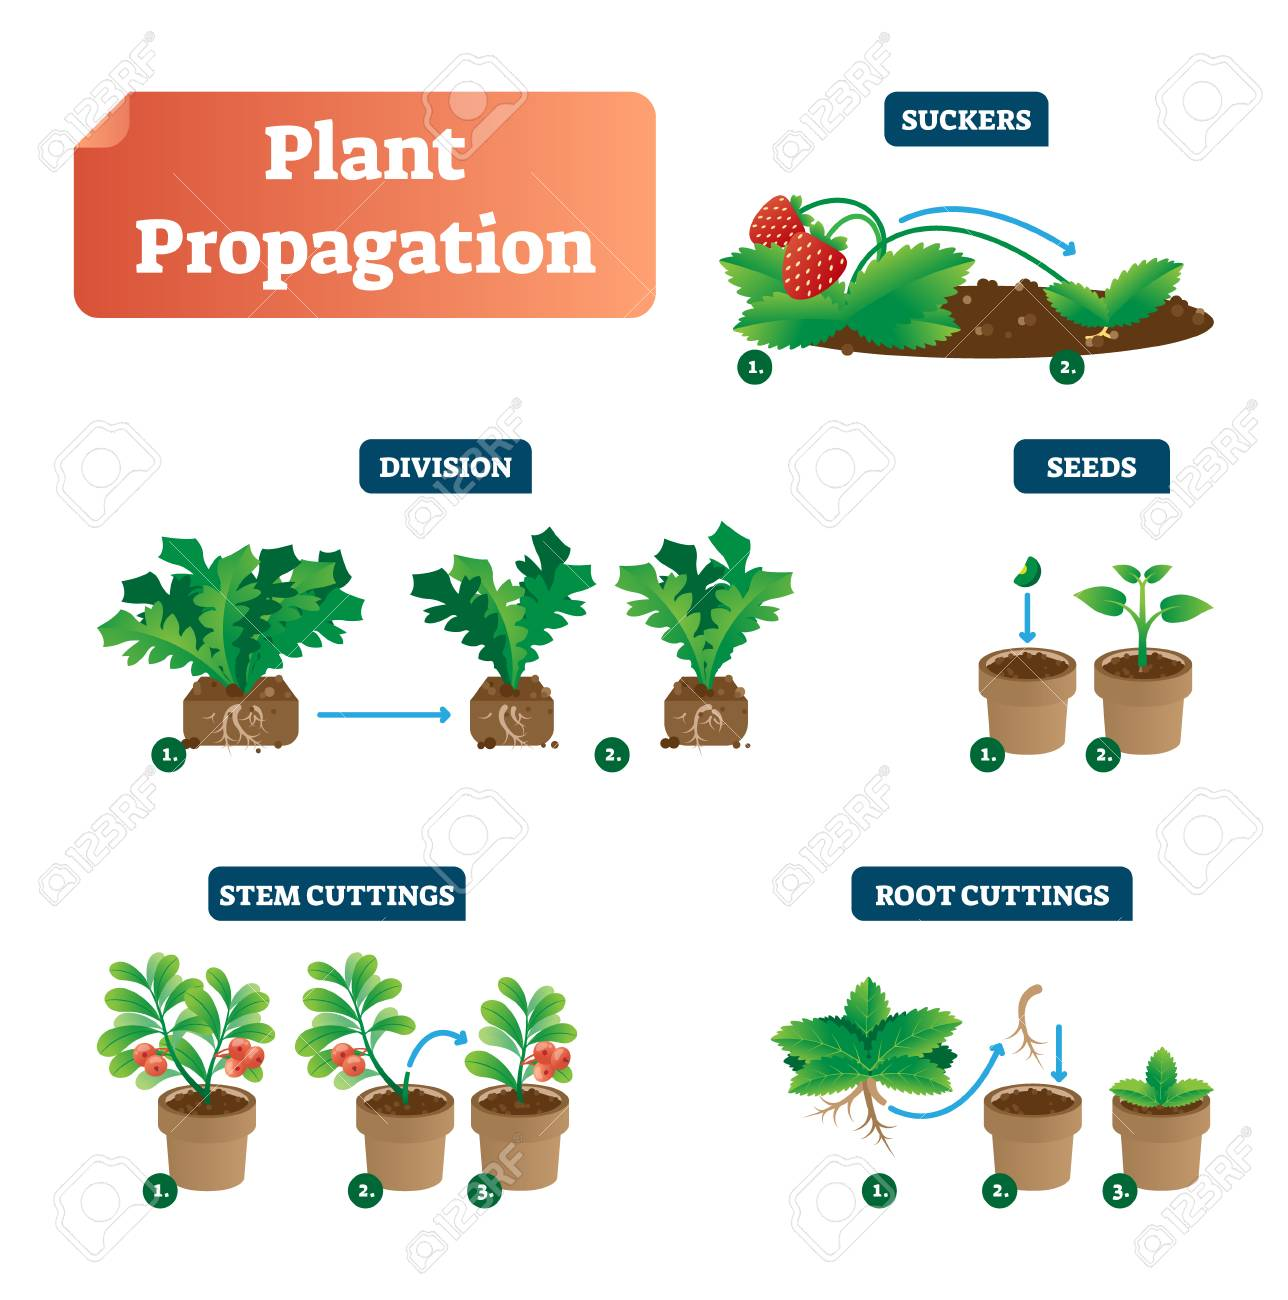 hight resolution of plant propagation vector illustration diagram scheme with labels on suckers division seeds